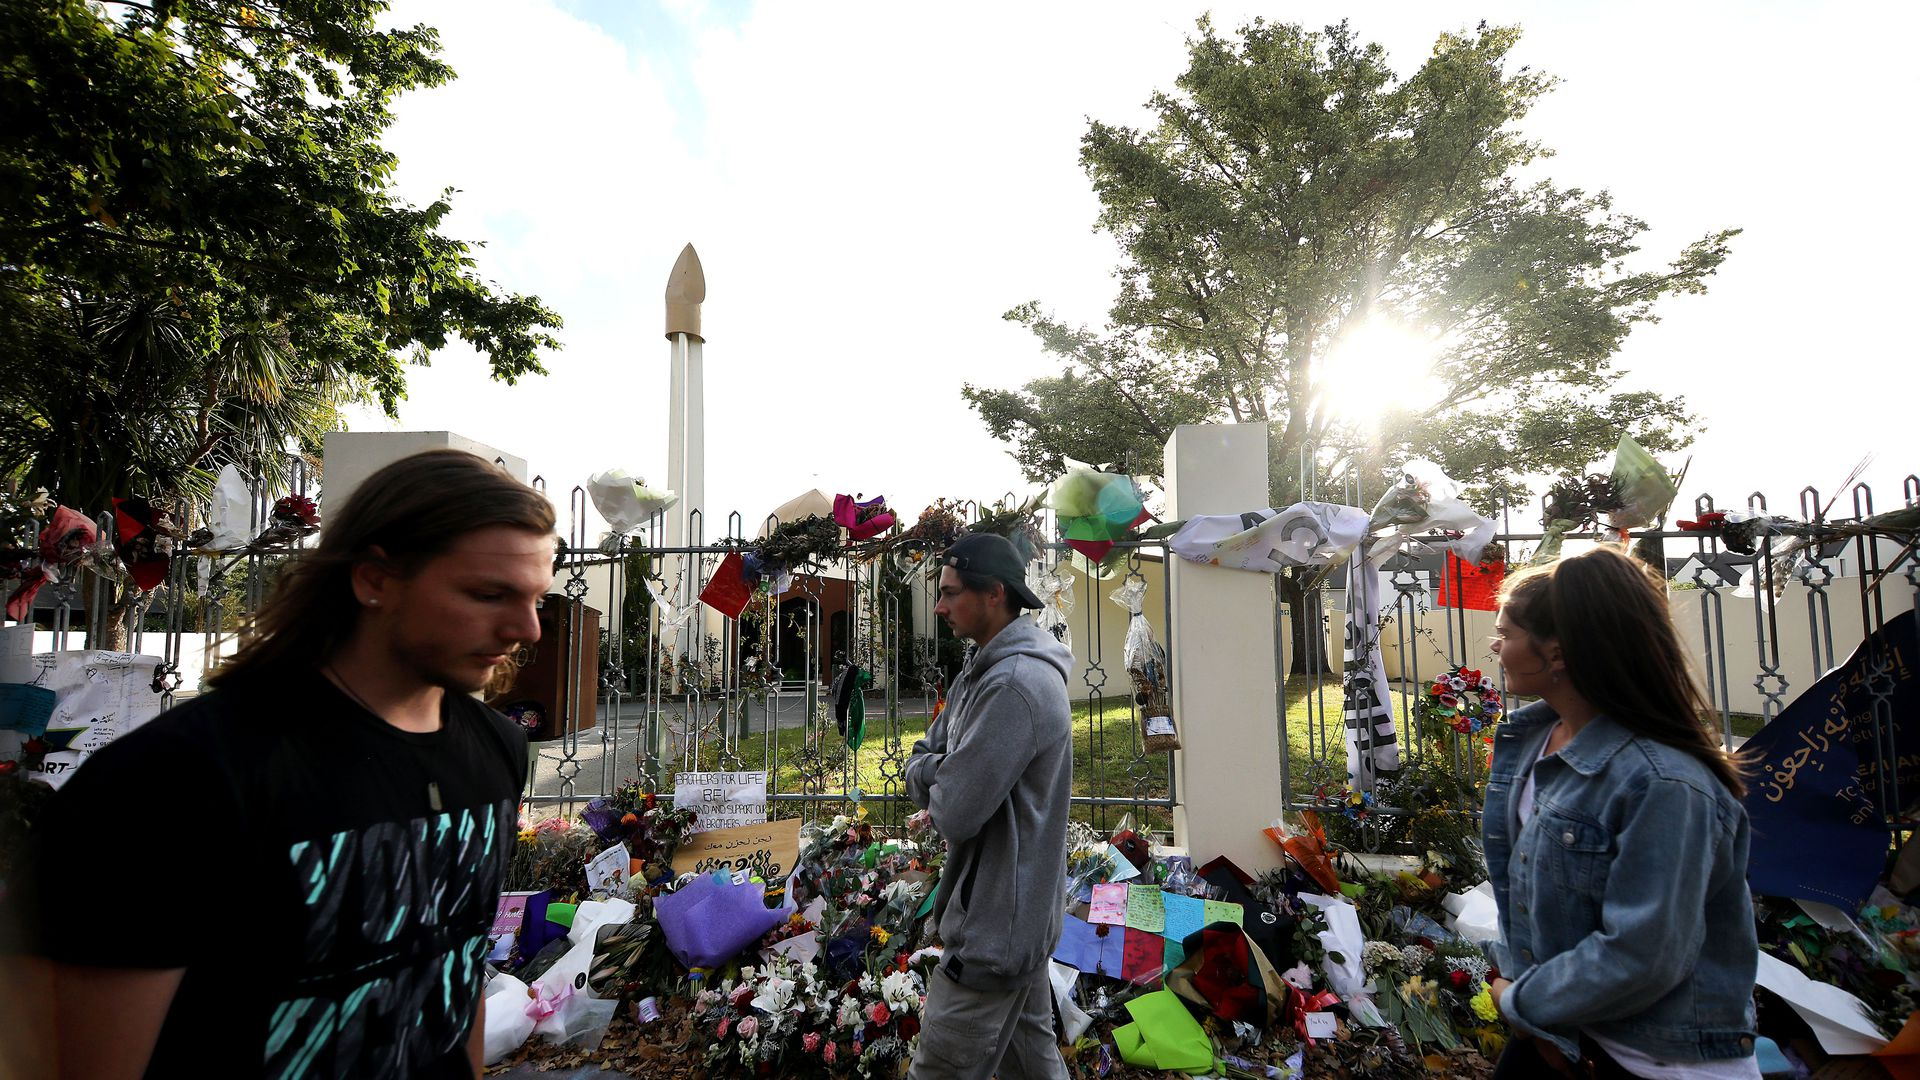 In this image, people walk by flowers and memorials laid out near a mosque fence.